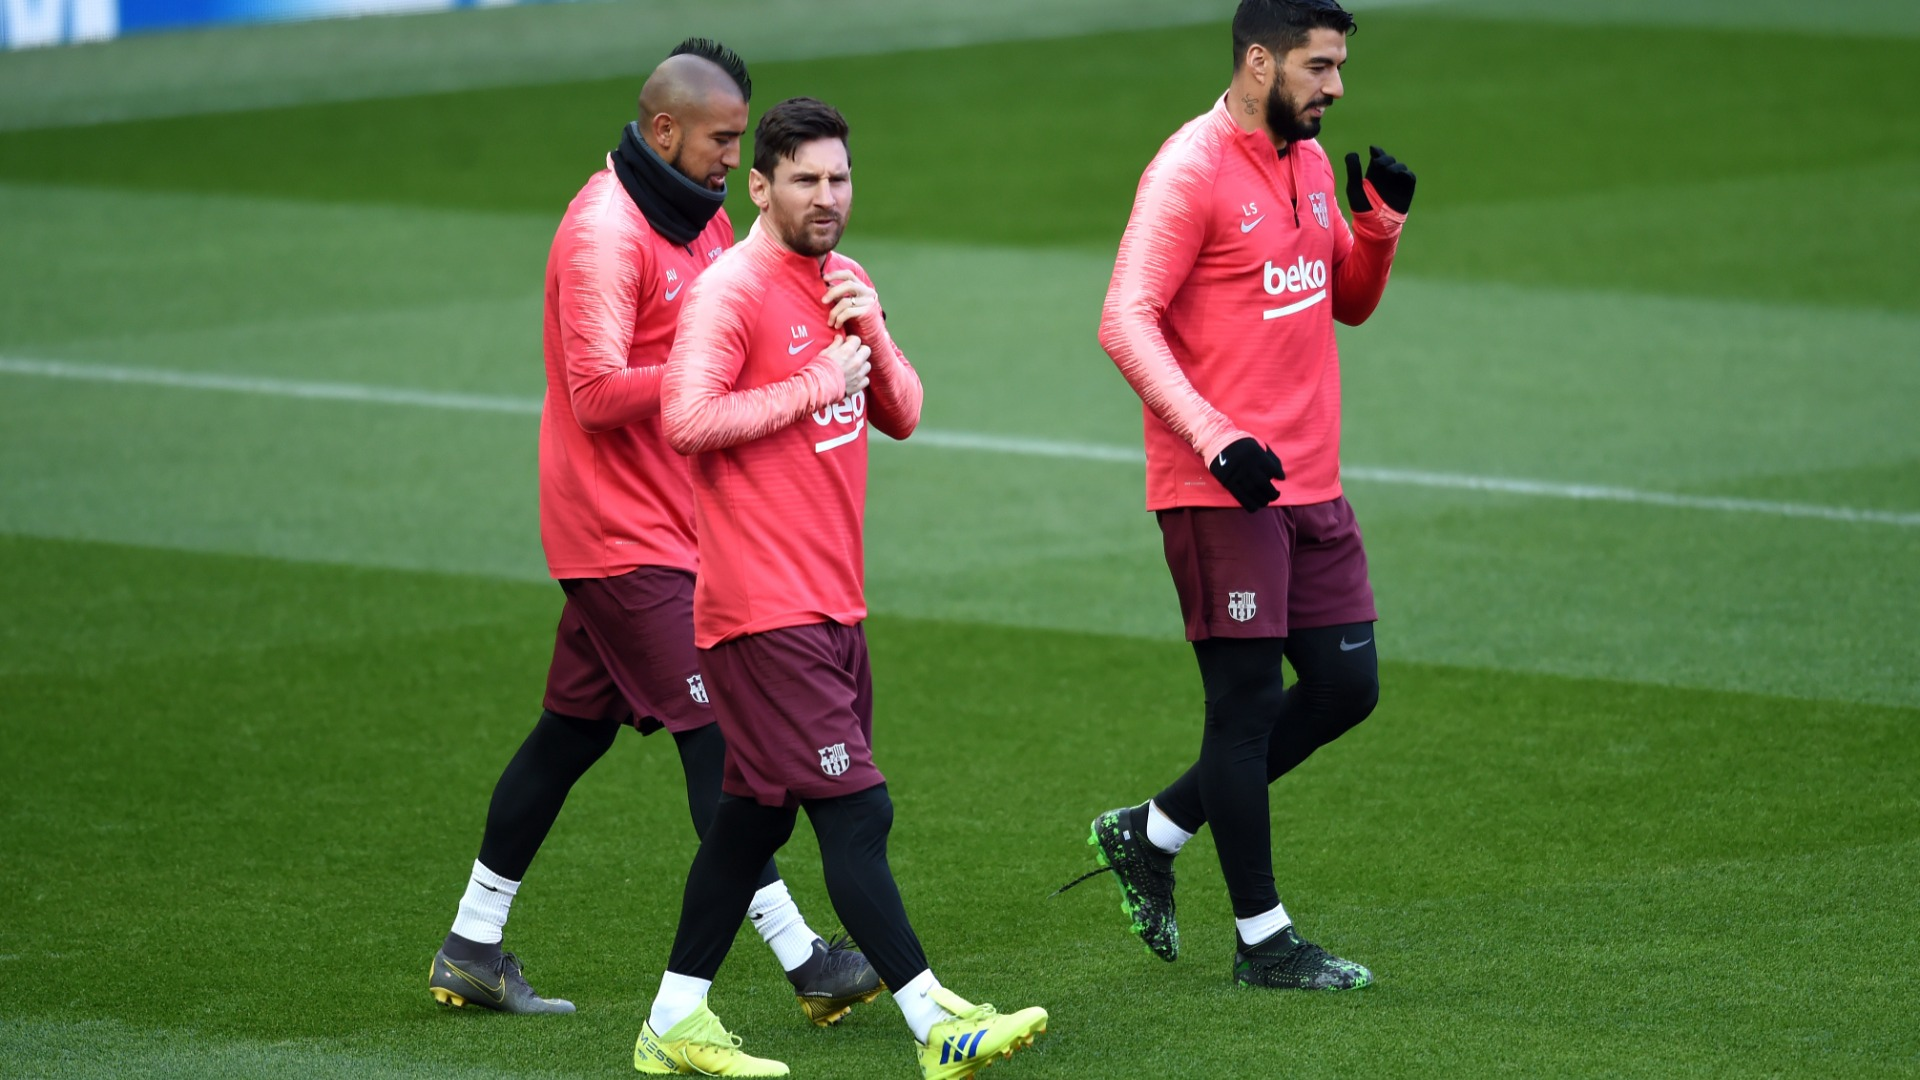 La Liga clubs to train in groups of 10 from Monday as return after coronavirus lockdown continues